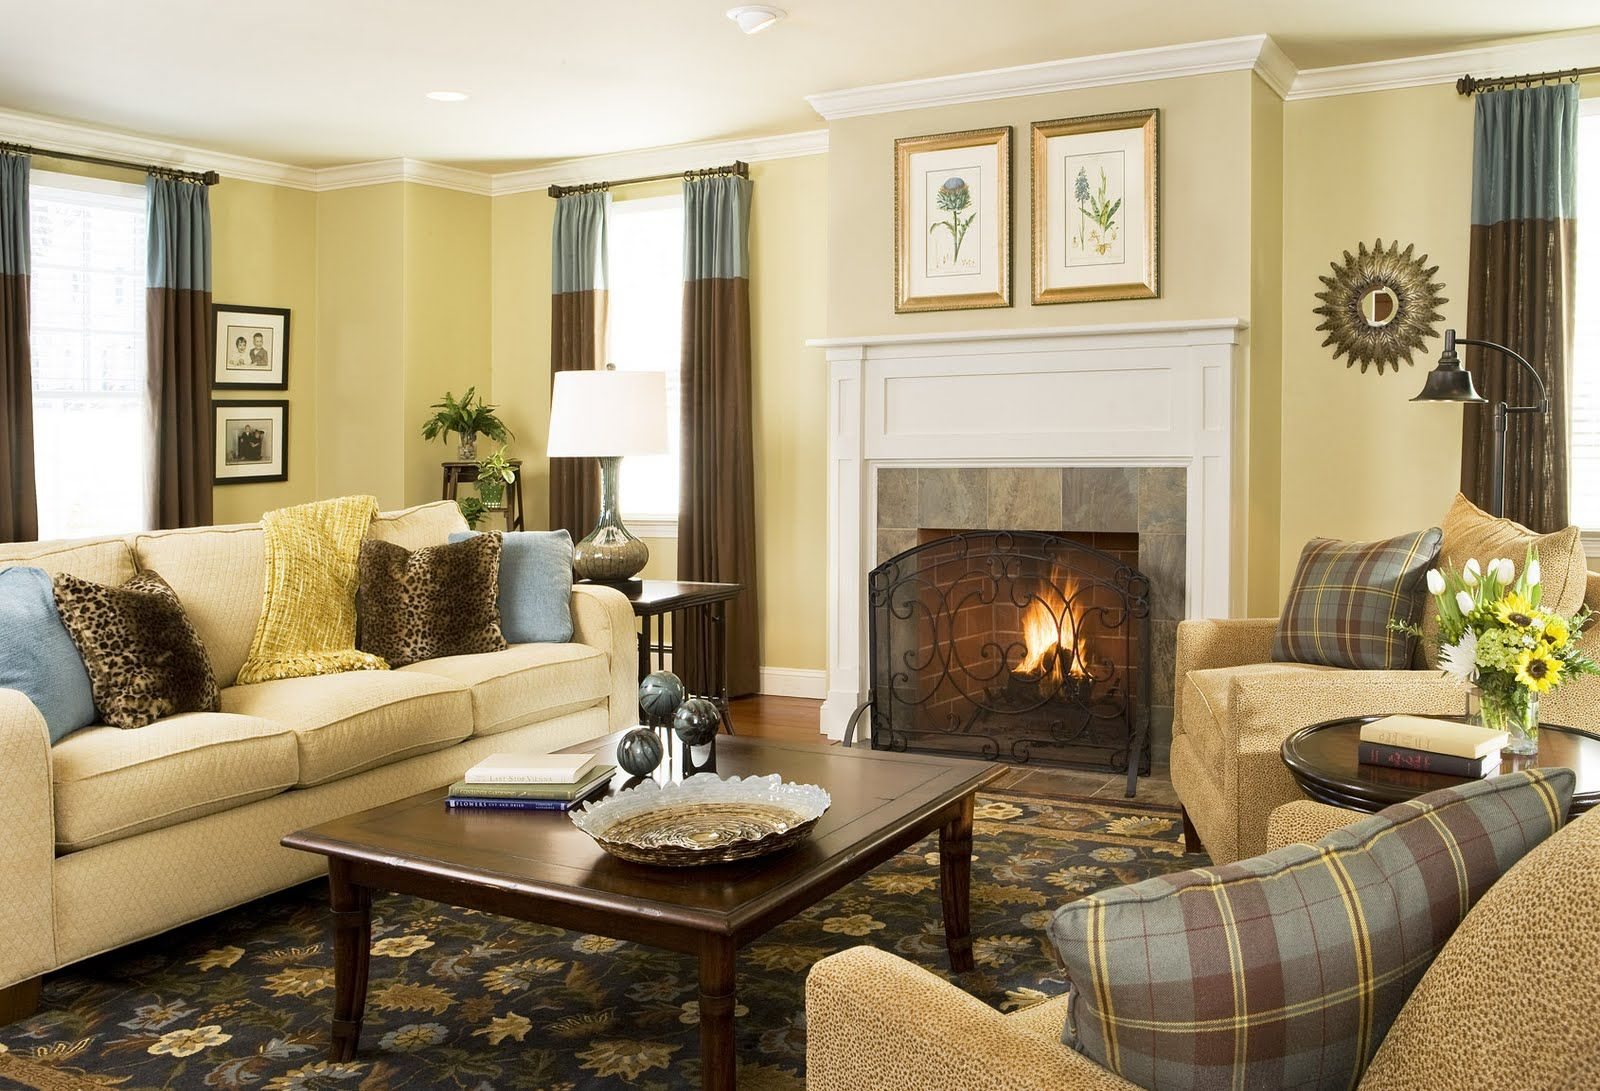 Best Cozy Living Room Design Ideas Blue And Yellow Living Room Yellow Living Room Brown Couch Living Room